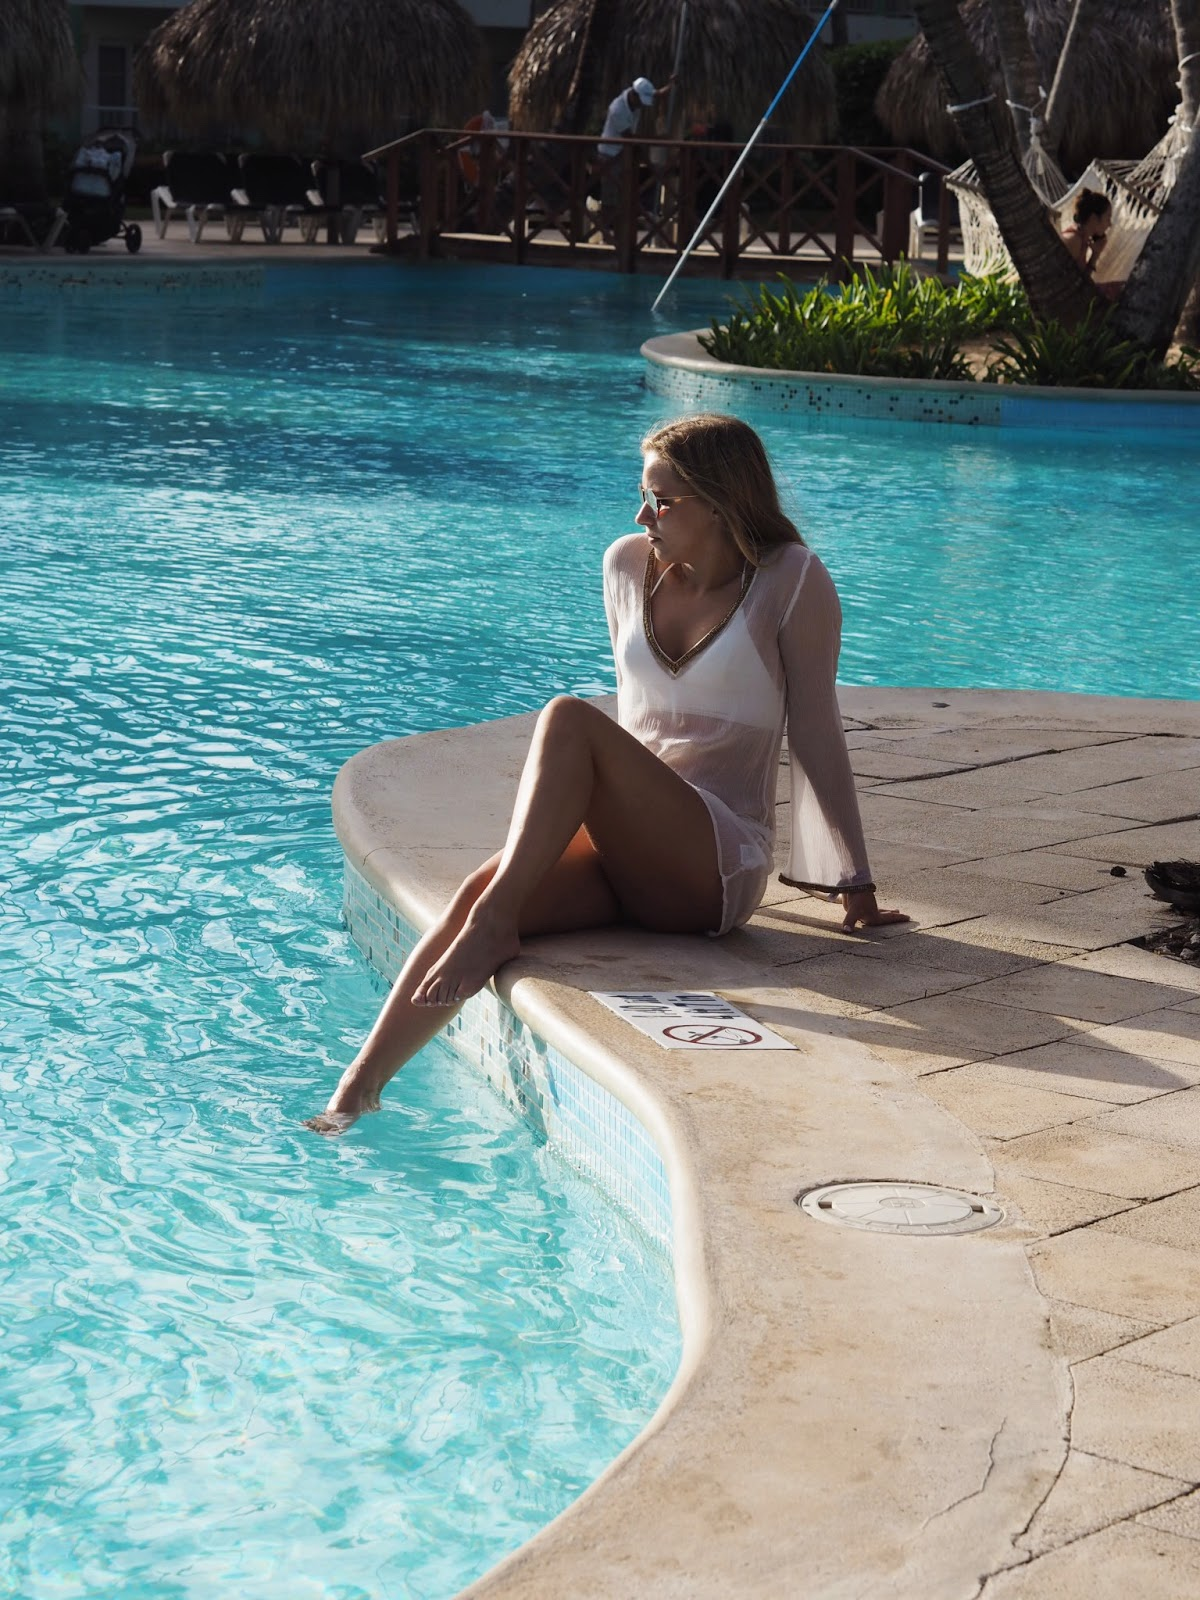 Poolside in White Perissa Miss Tunica Tunic Ray Ban Blaze Sunglasses